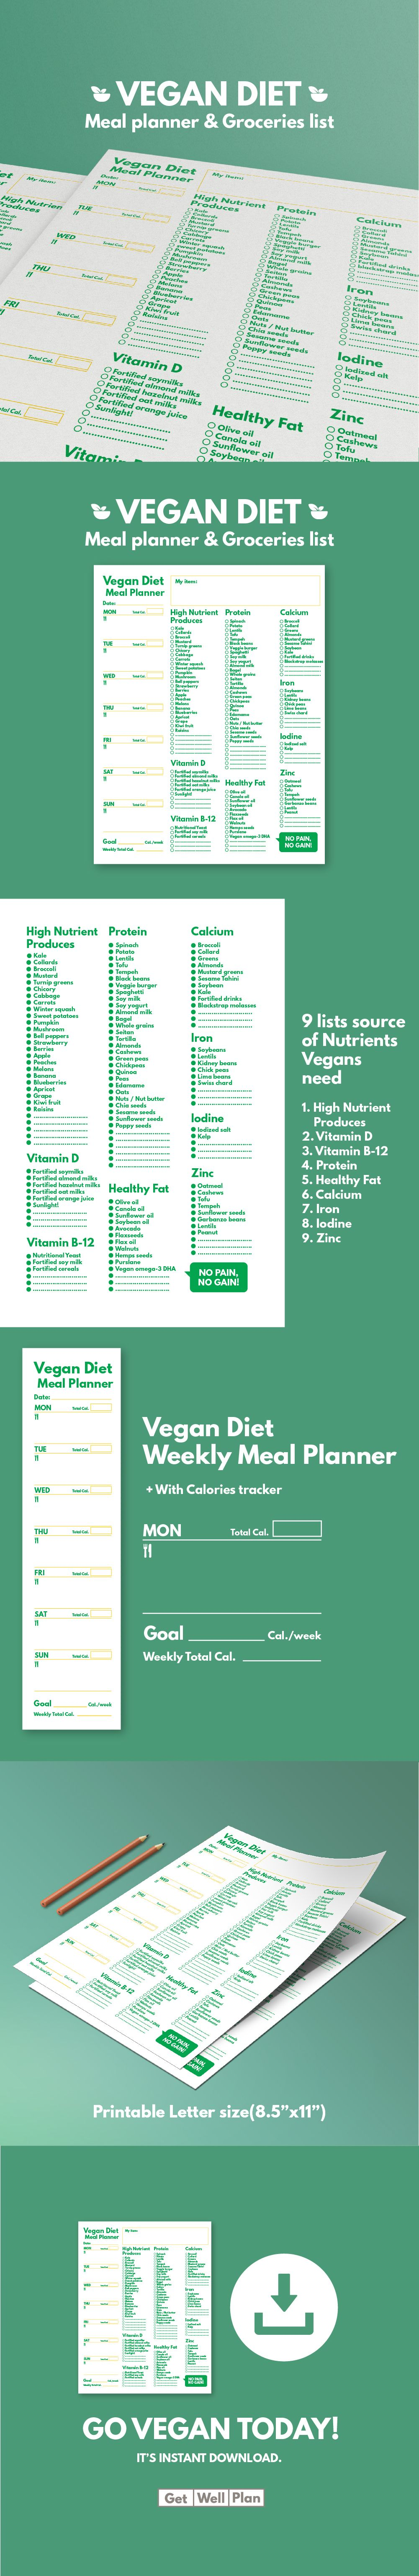 meal plans shopping lists clean eating diet plan meal plan and